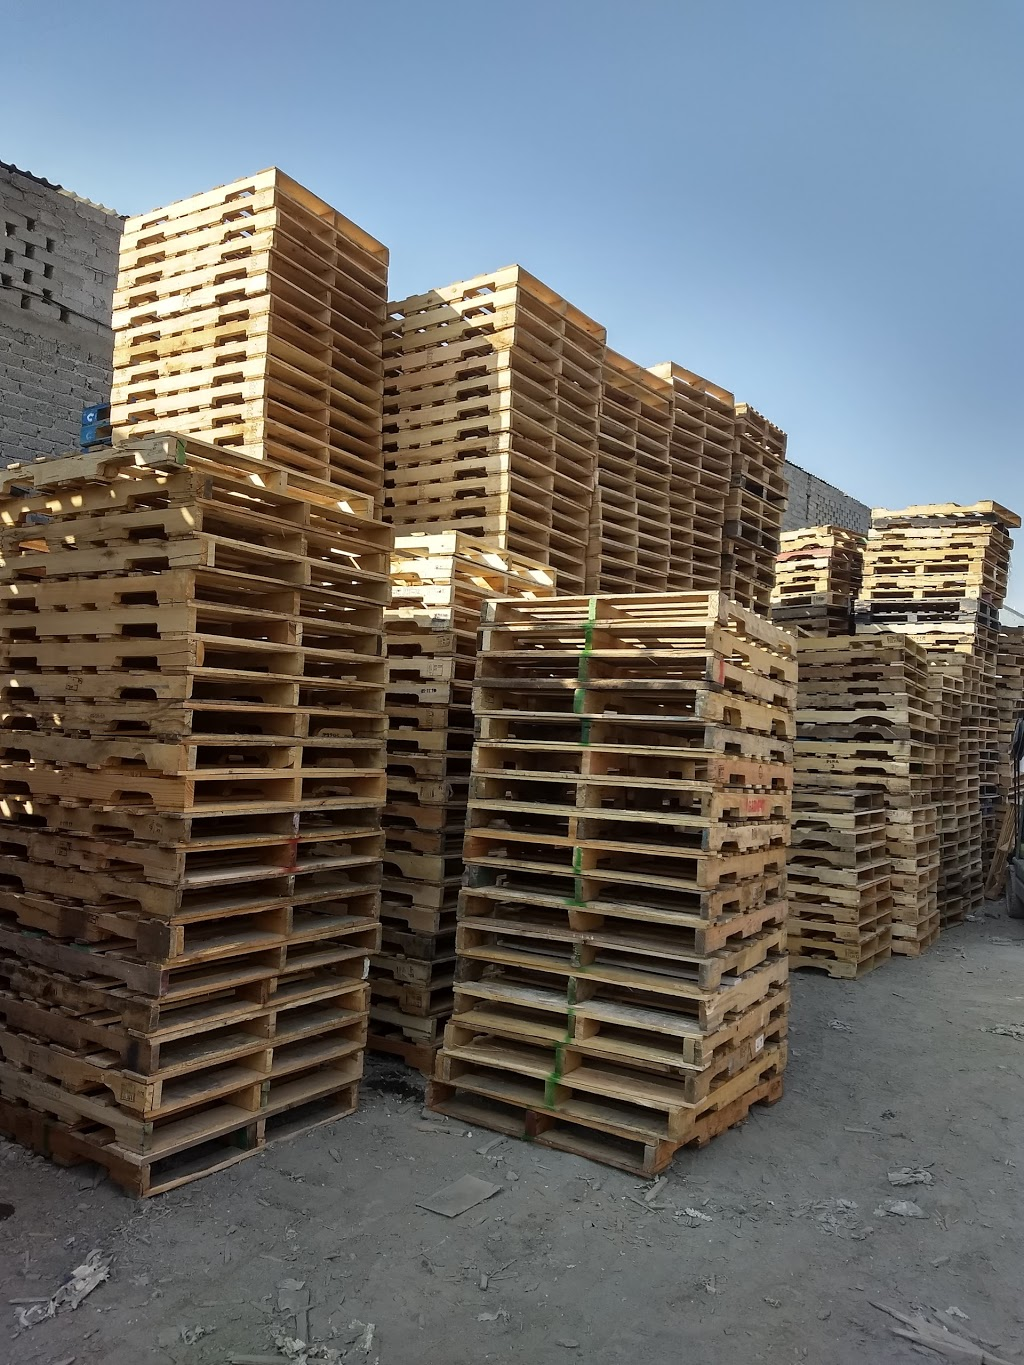 D & G Pallet Services Inc - point of interest    Photo 4 of 7   Address: 4445 W 5th Ave, Chicago, IL 60624, USA   Phone: (773) 265-8470